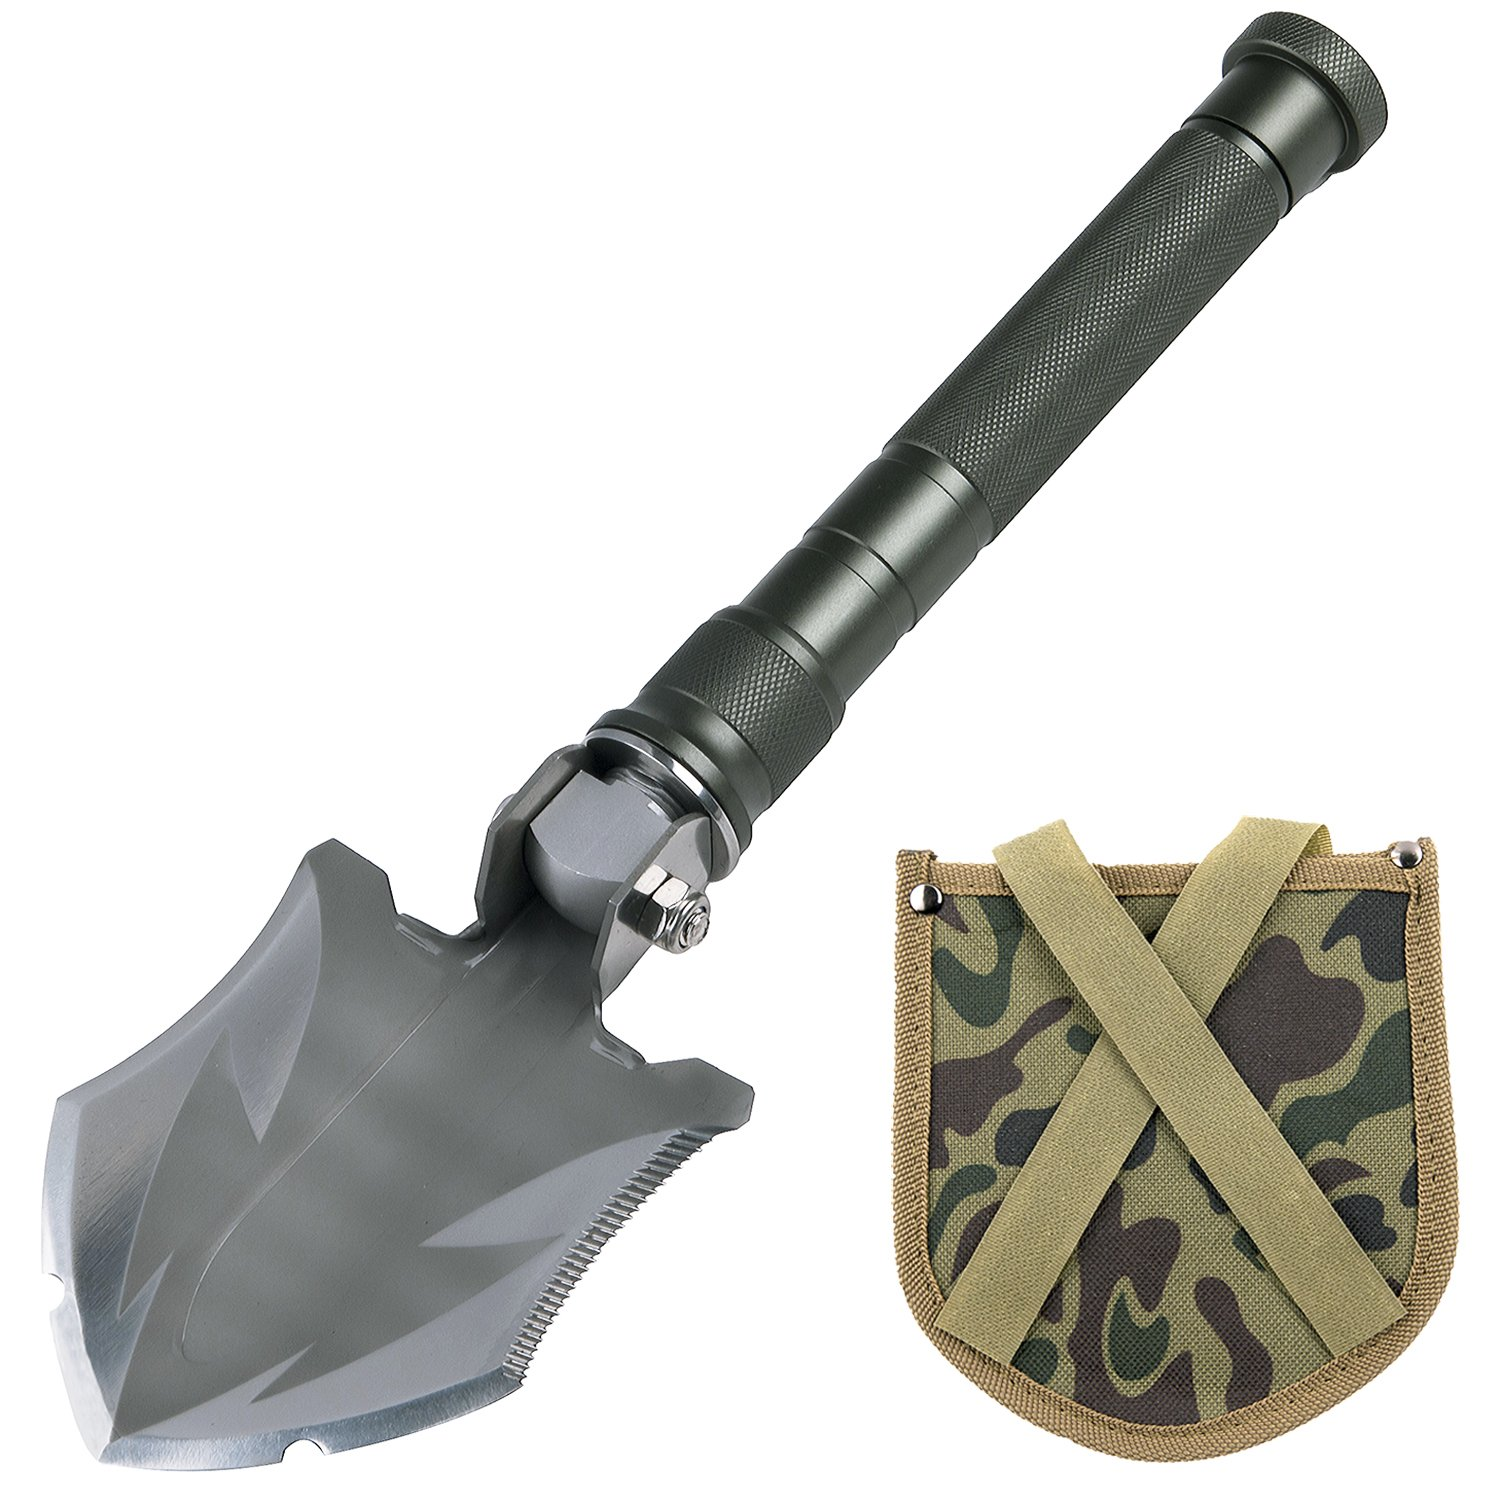 Glossday Military Folding Shovel Multitool,Portable Survival Shovels,Tactical Entrenching Tool,Heavy Duty Emergency Tool, Outdoor Gear Camping Backpacking,Fishing,Hiking (15inch) by Glossday (Image #1)